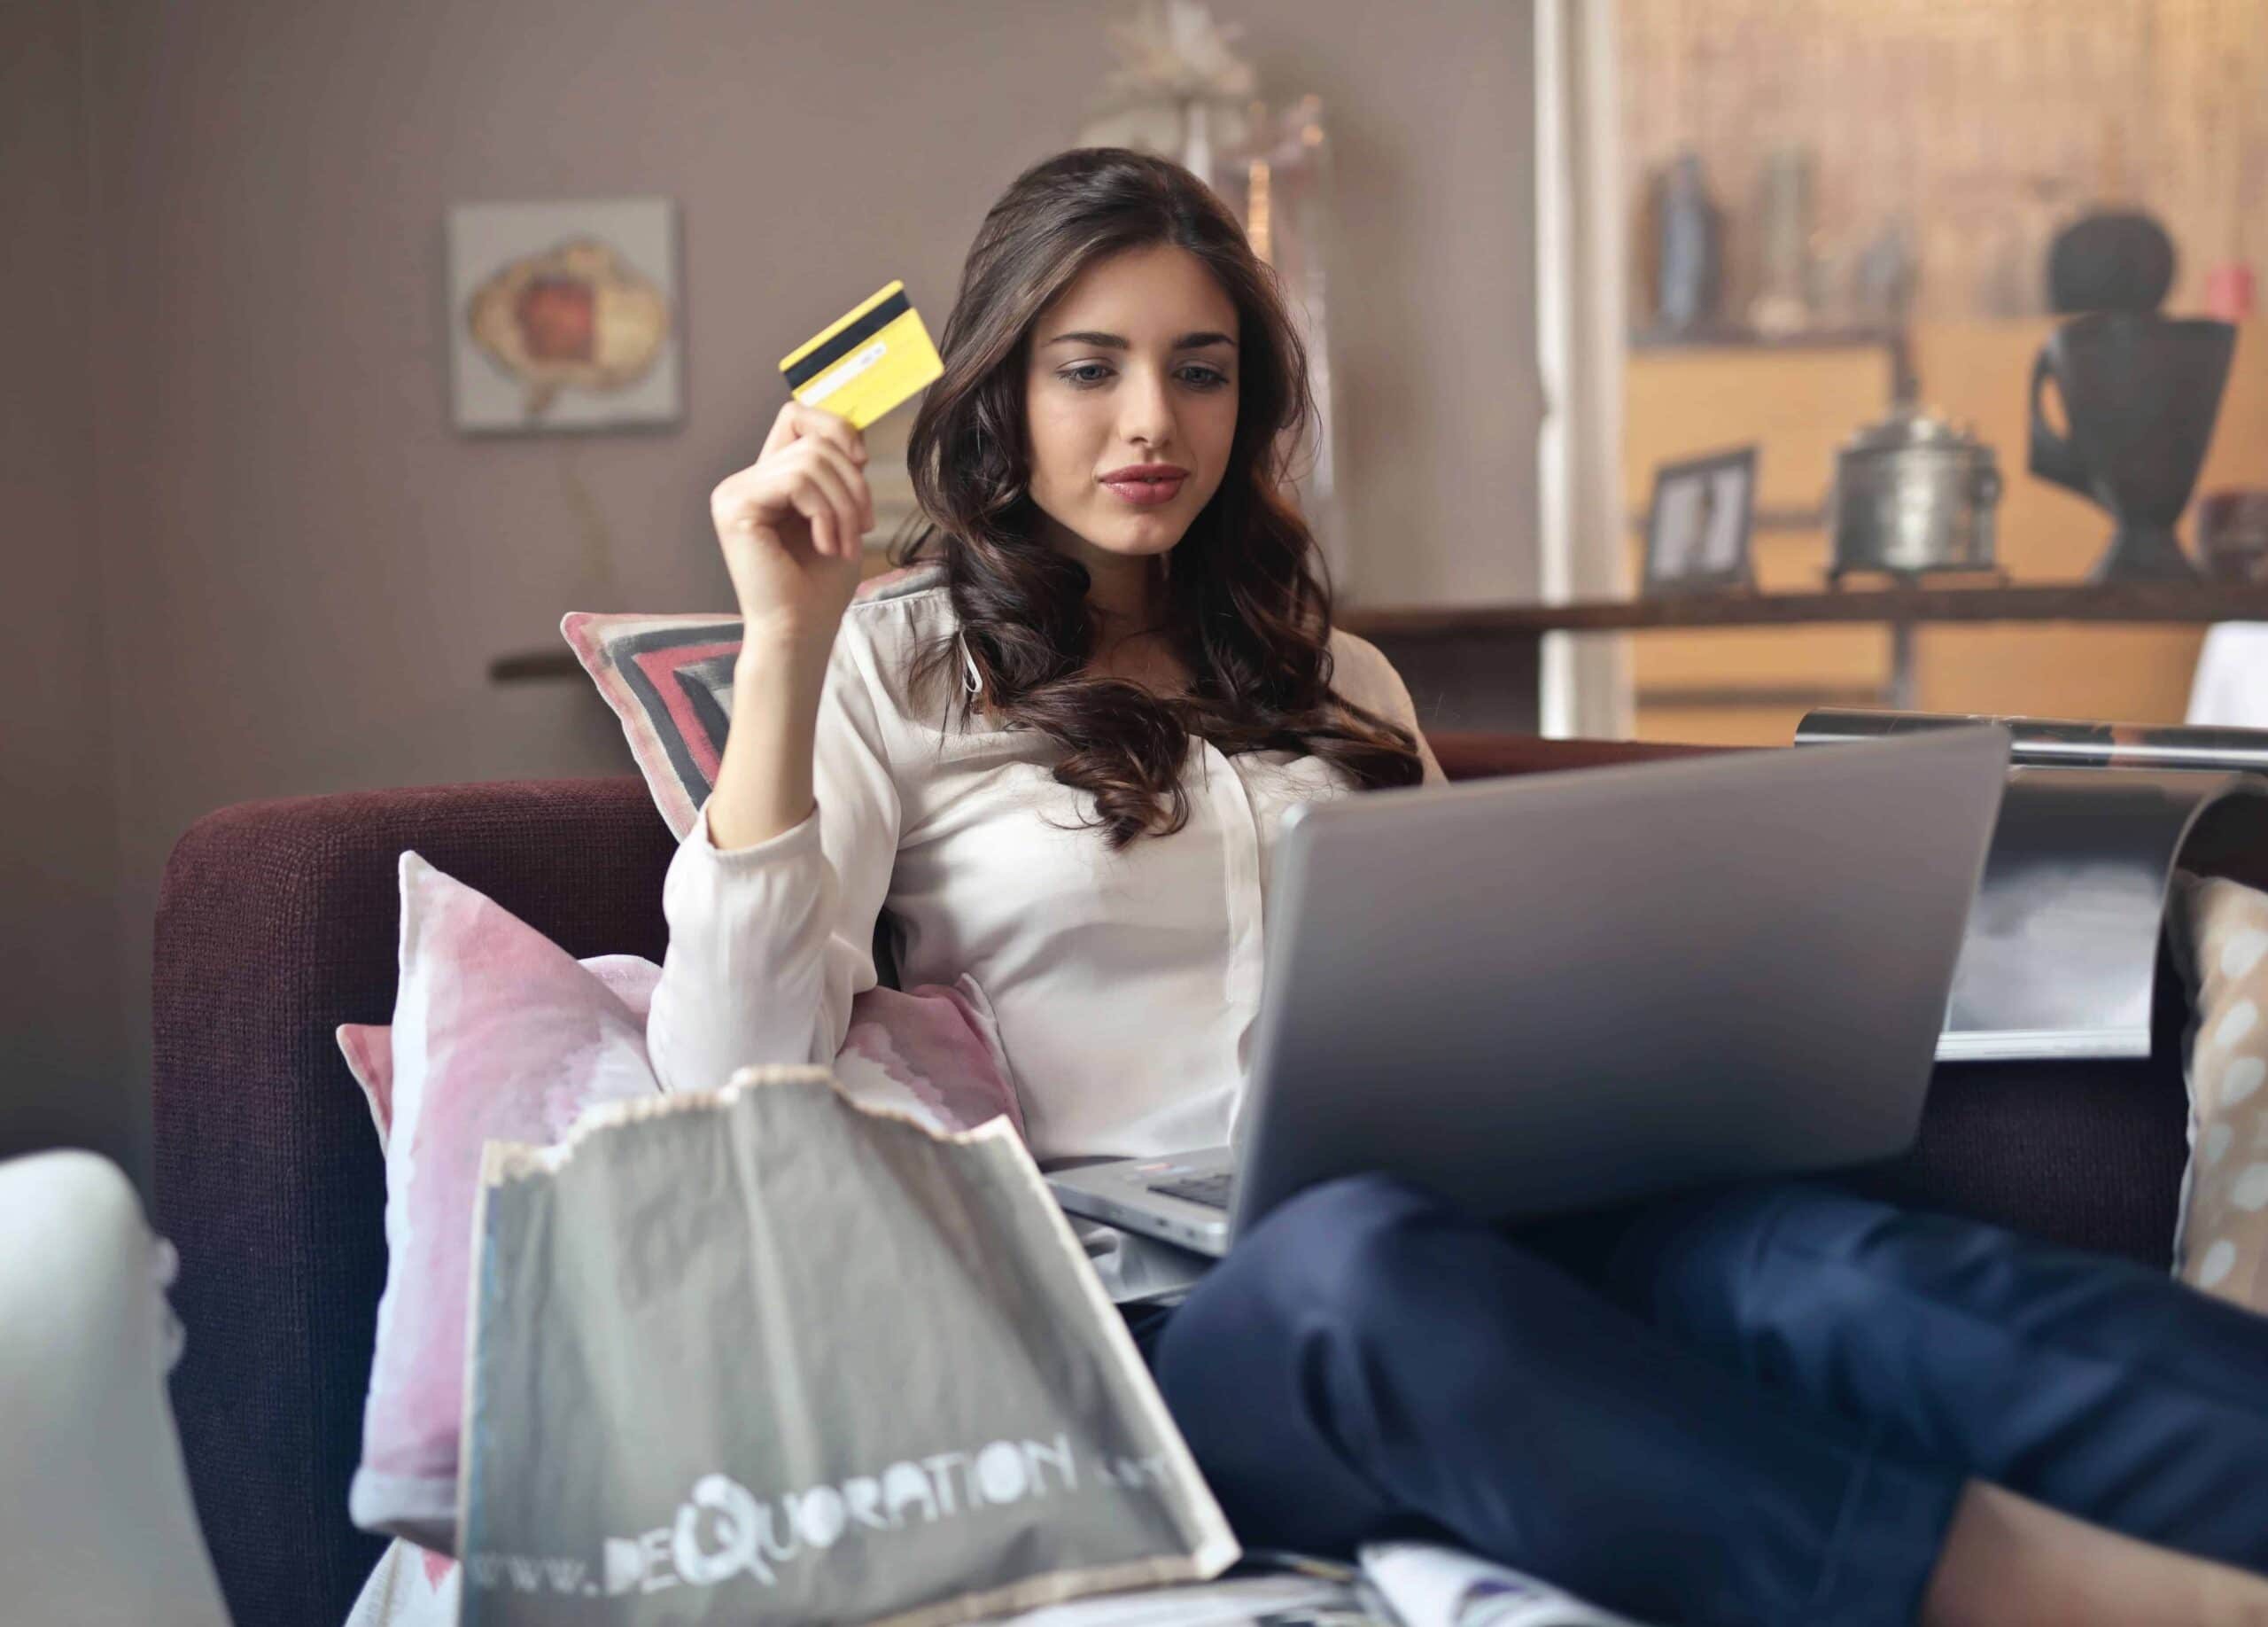 woman-online-shopping-holding-credit-card